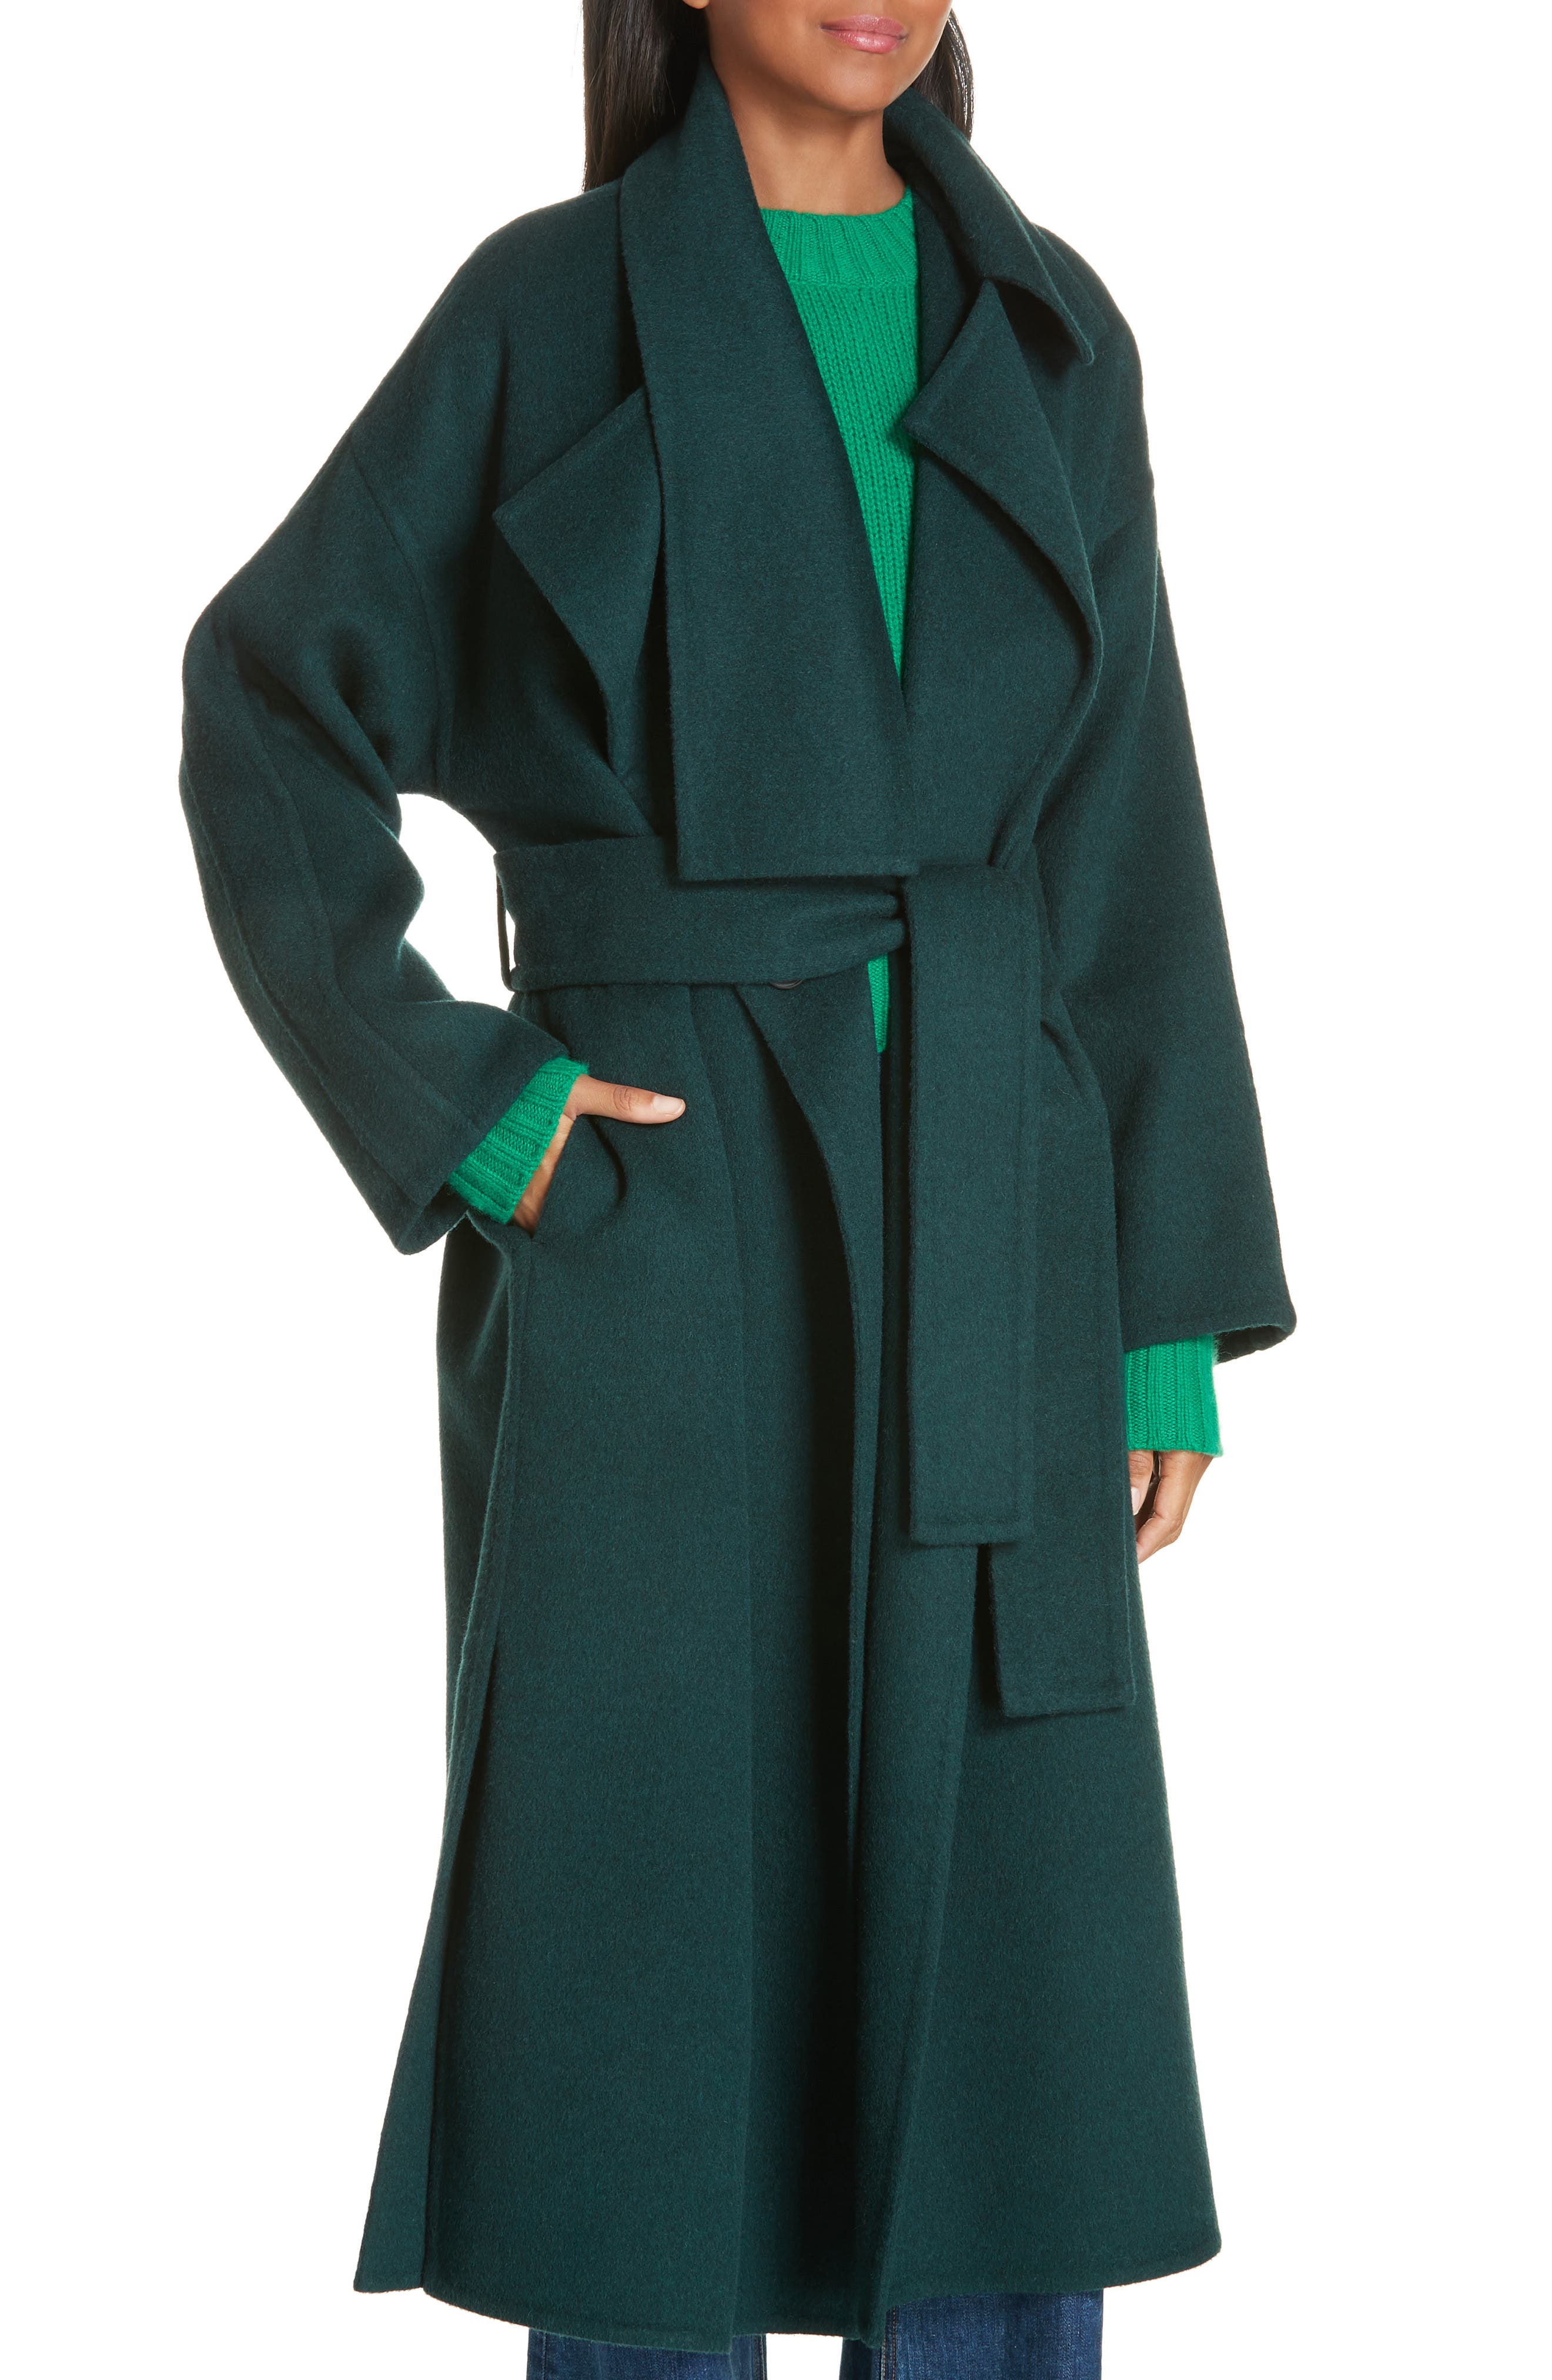 VINCE, Belted Wool Blend Cozy Coat, Alternate thumbnail 5, color, DARK PALM